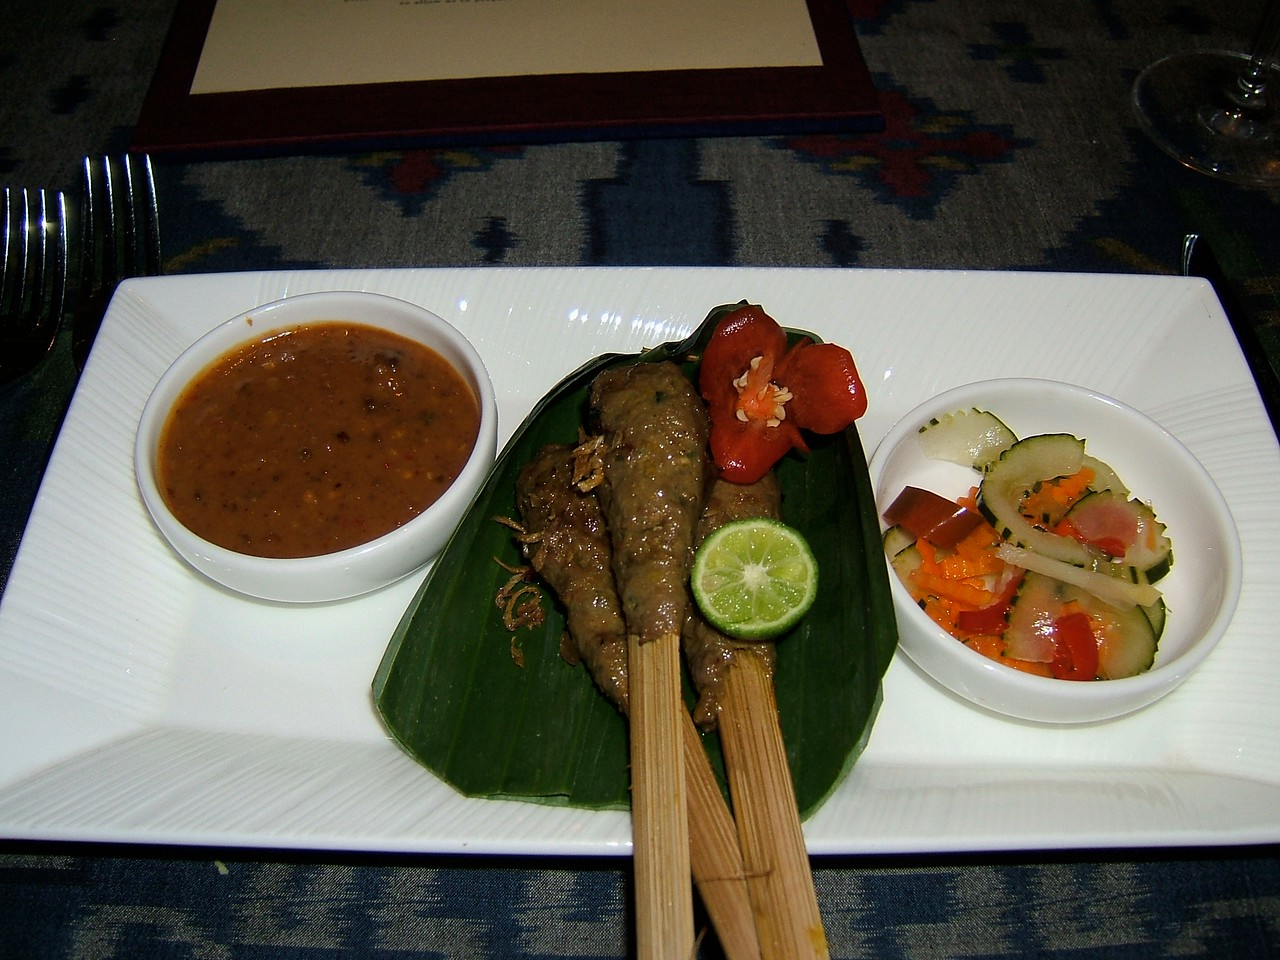 Balinese pork on skewers.